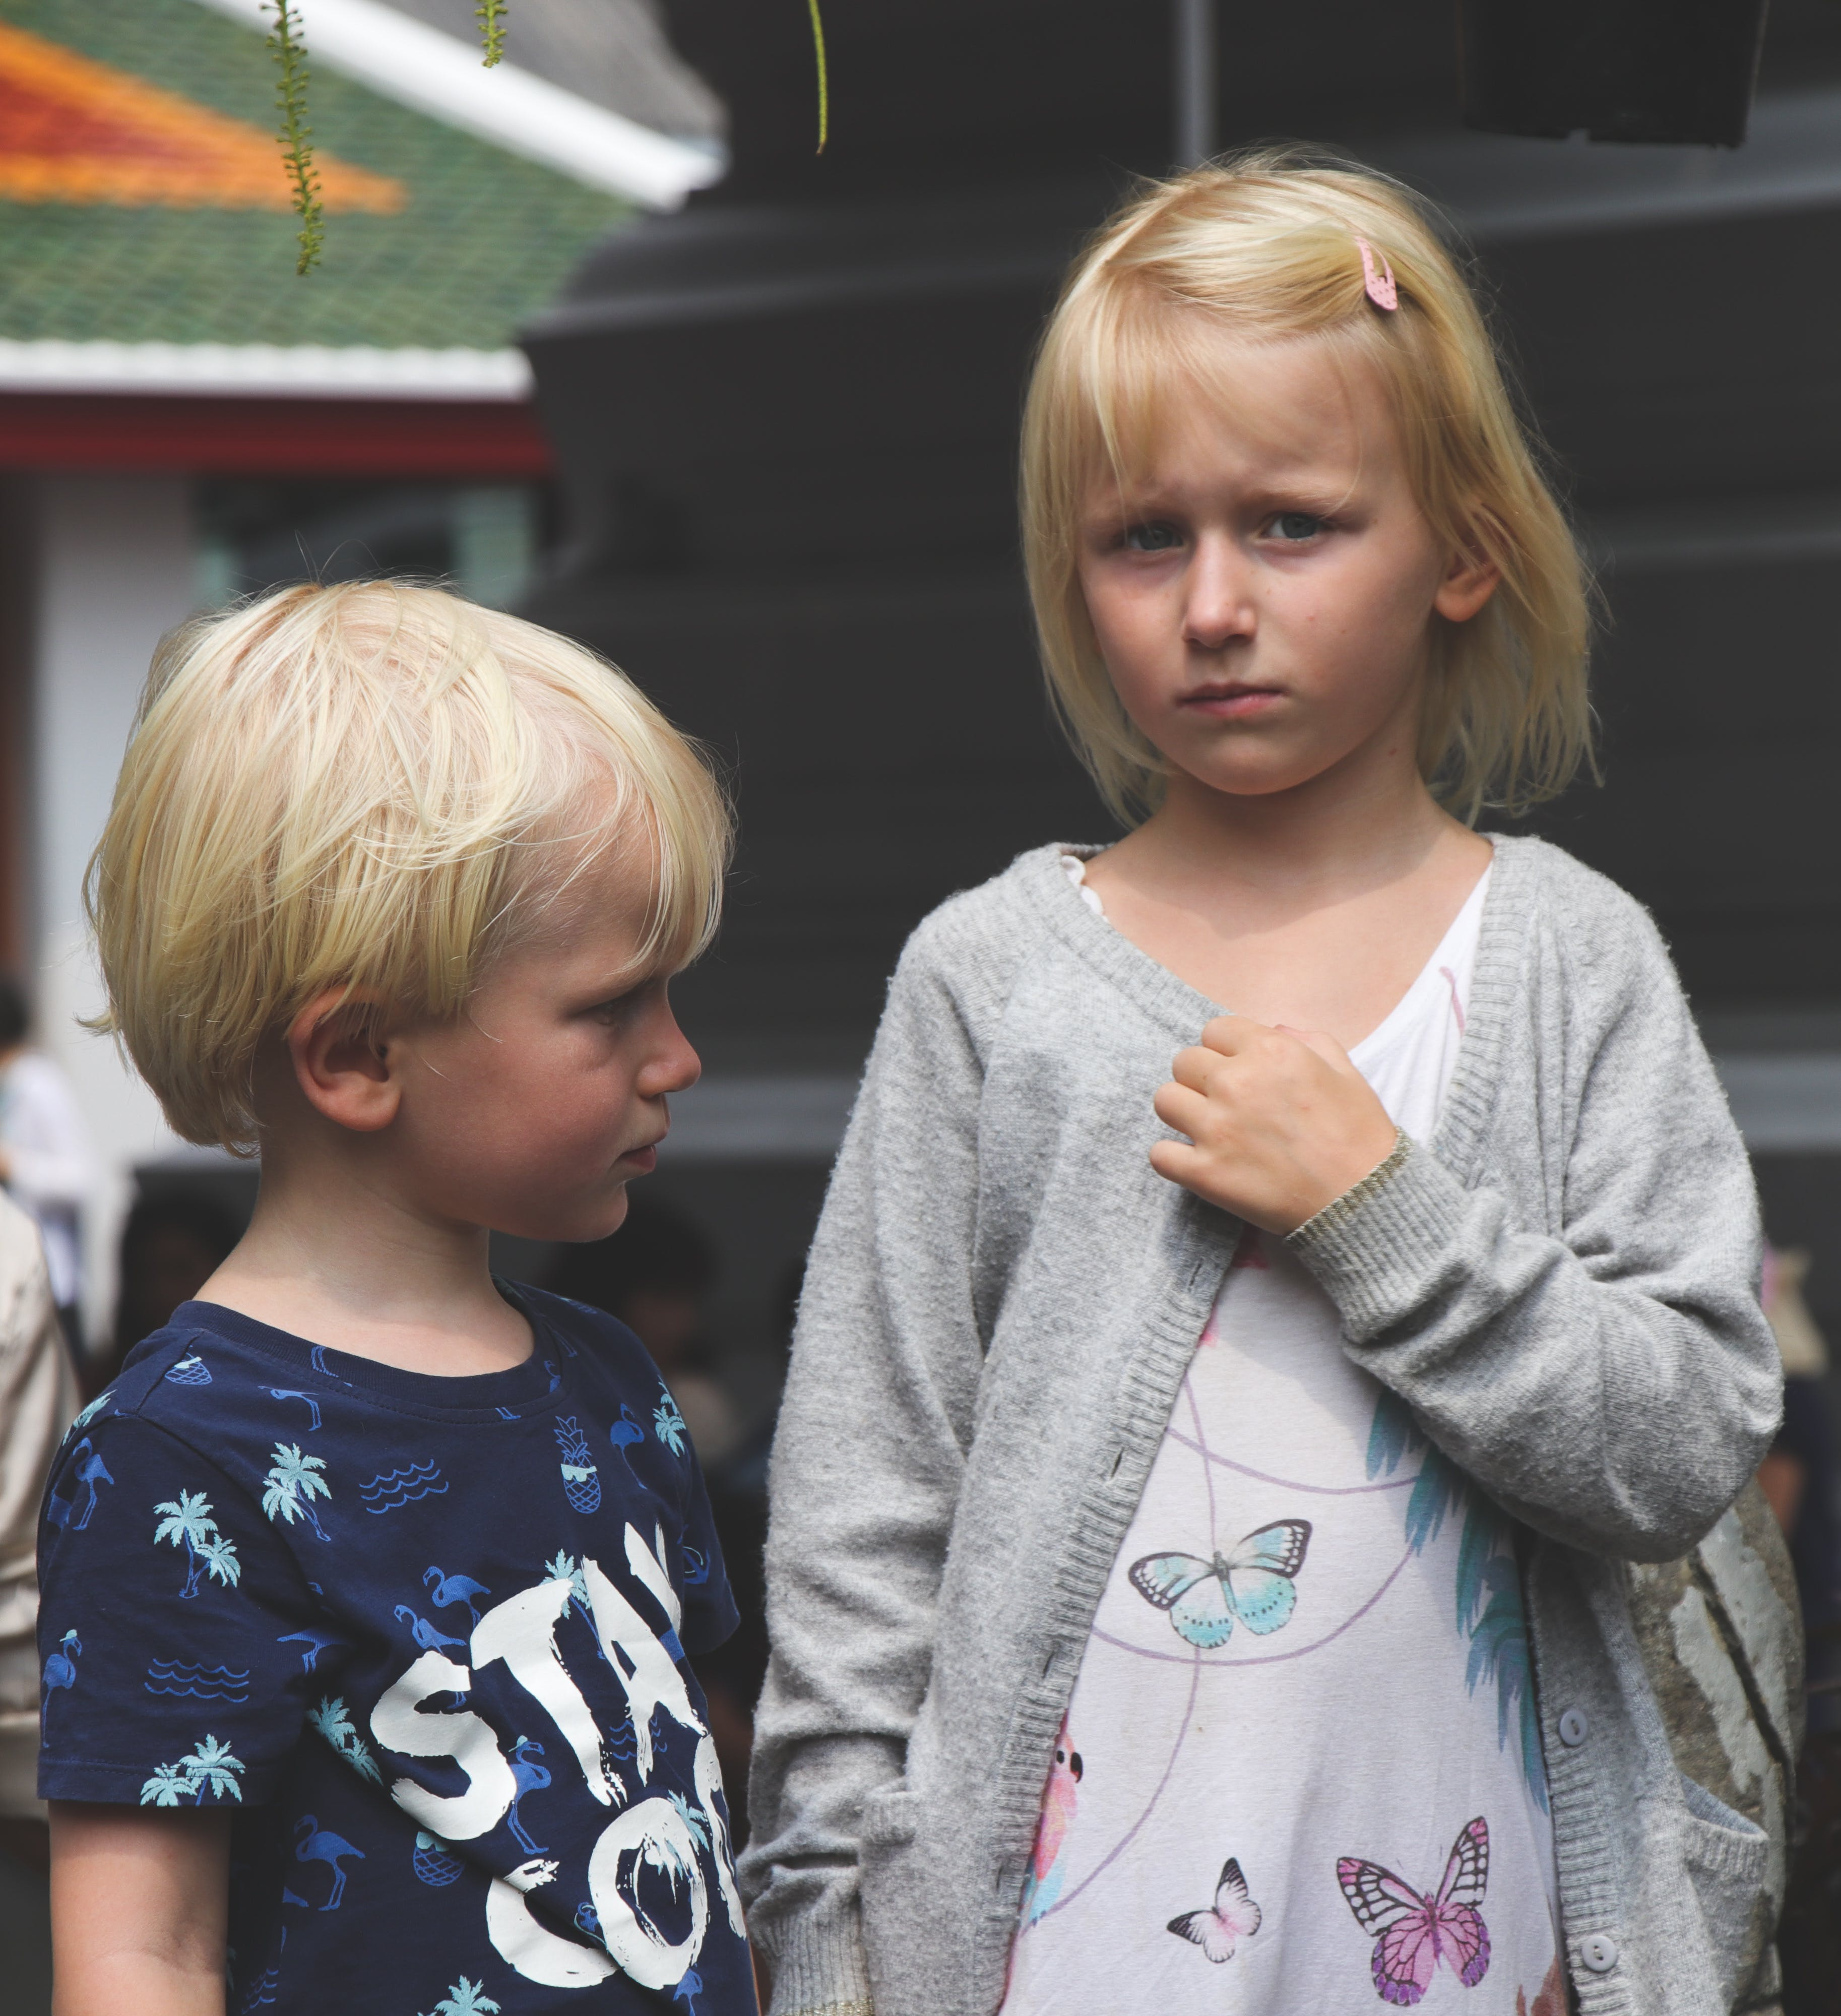 Boy Wearing Blue and White Stay Cool Print Crew-neck T-shirt Next to Girl Wearing White and Teal Butterfly Printed Scoop-neck Shirt and Gray Open Long-sleeved Cardigan